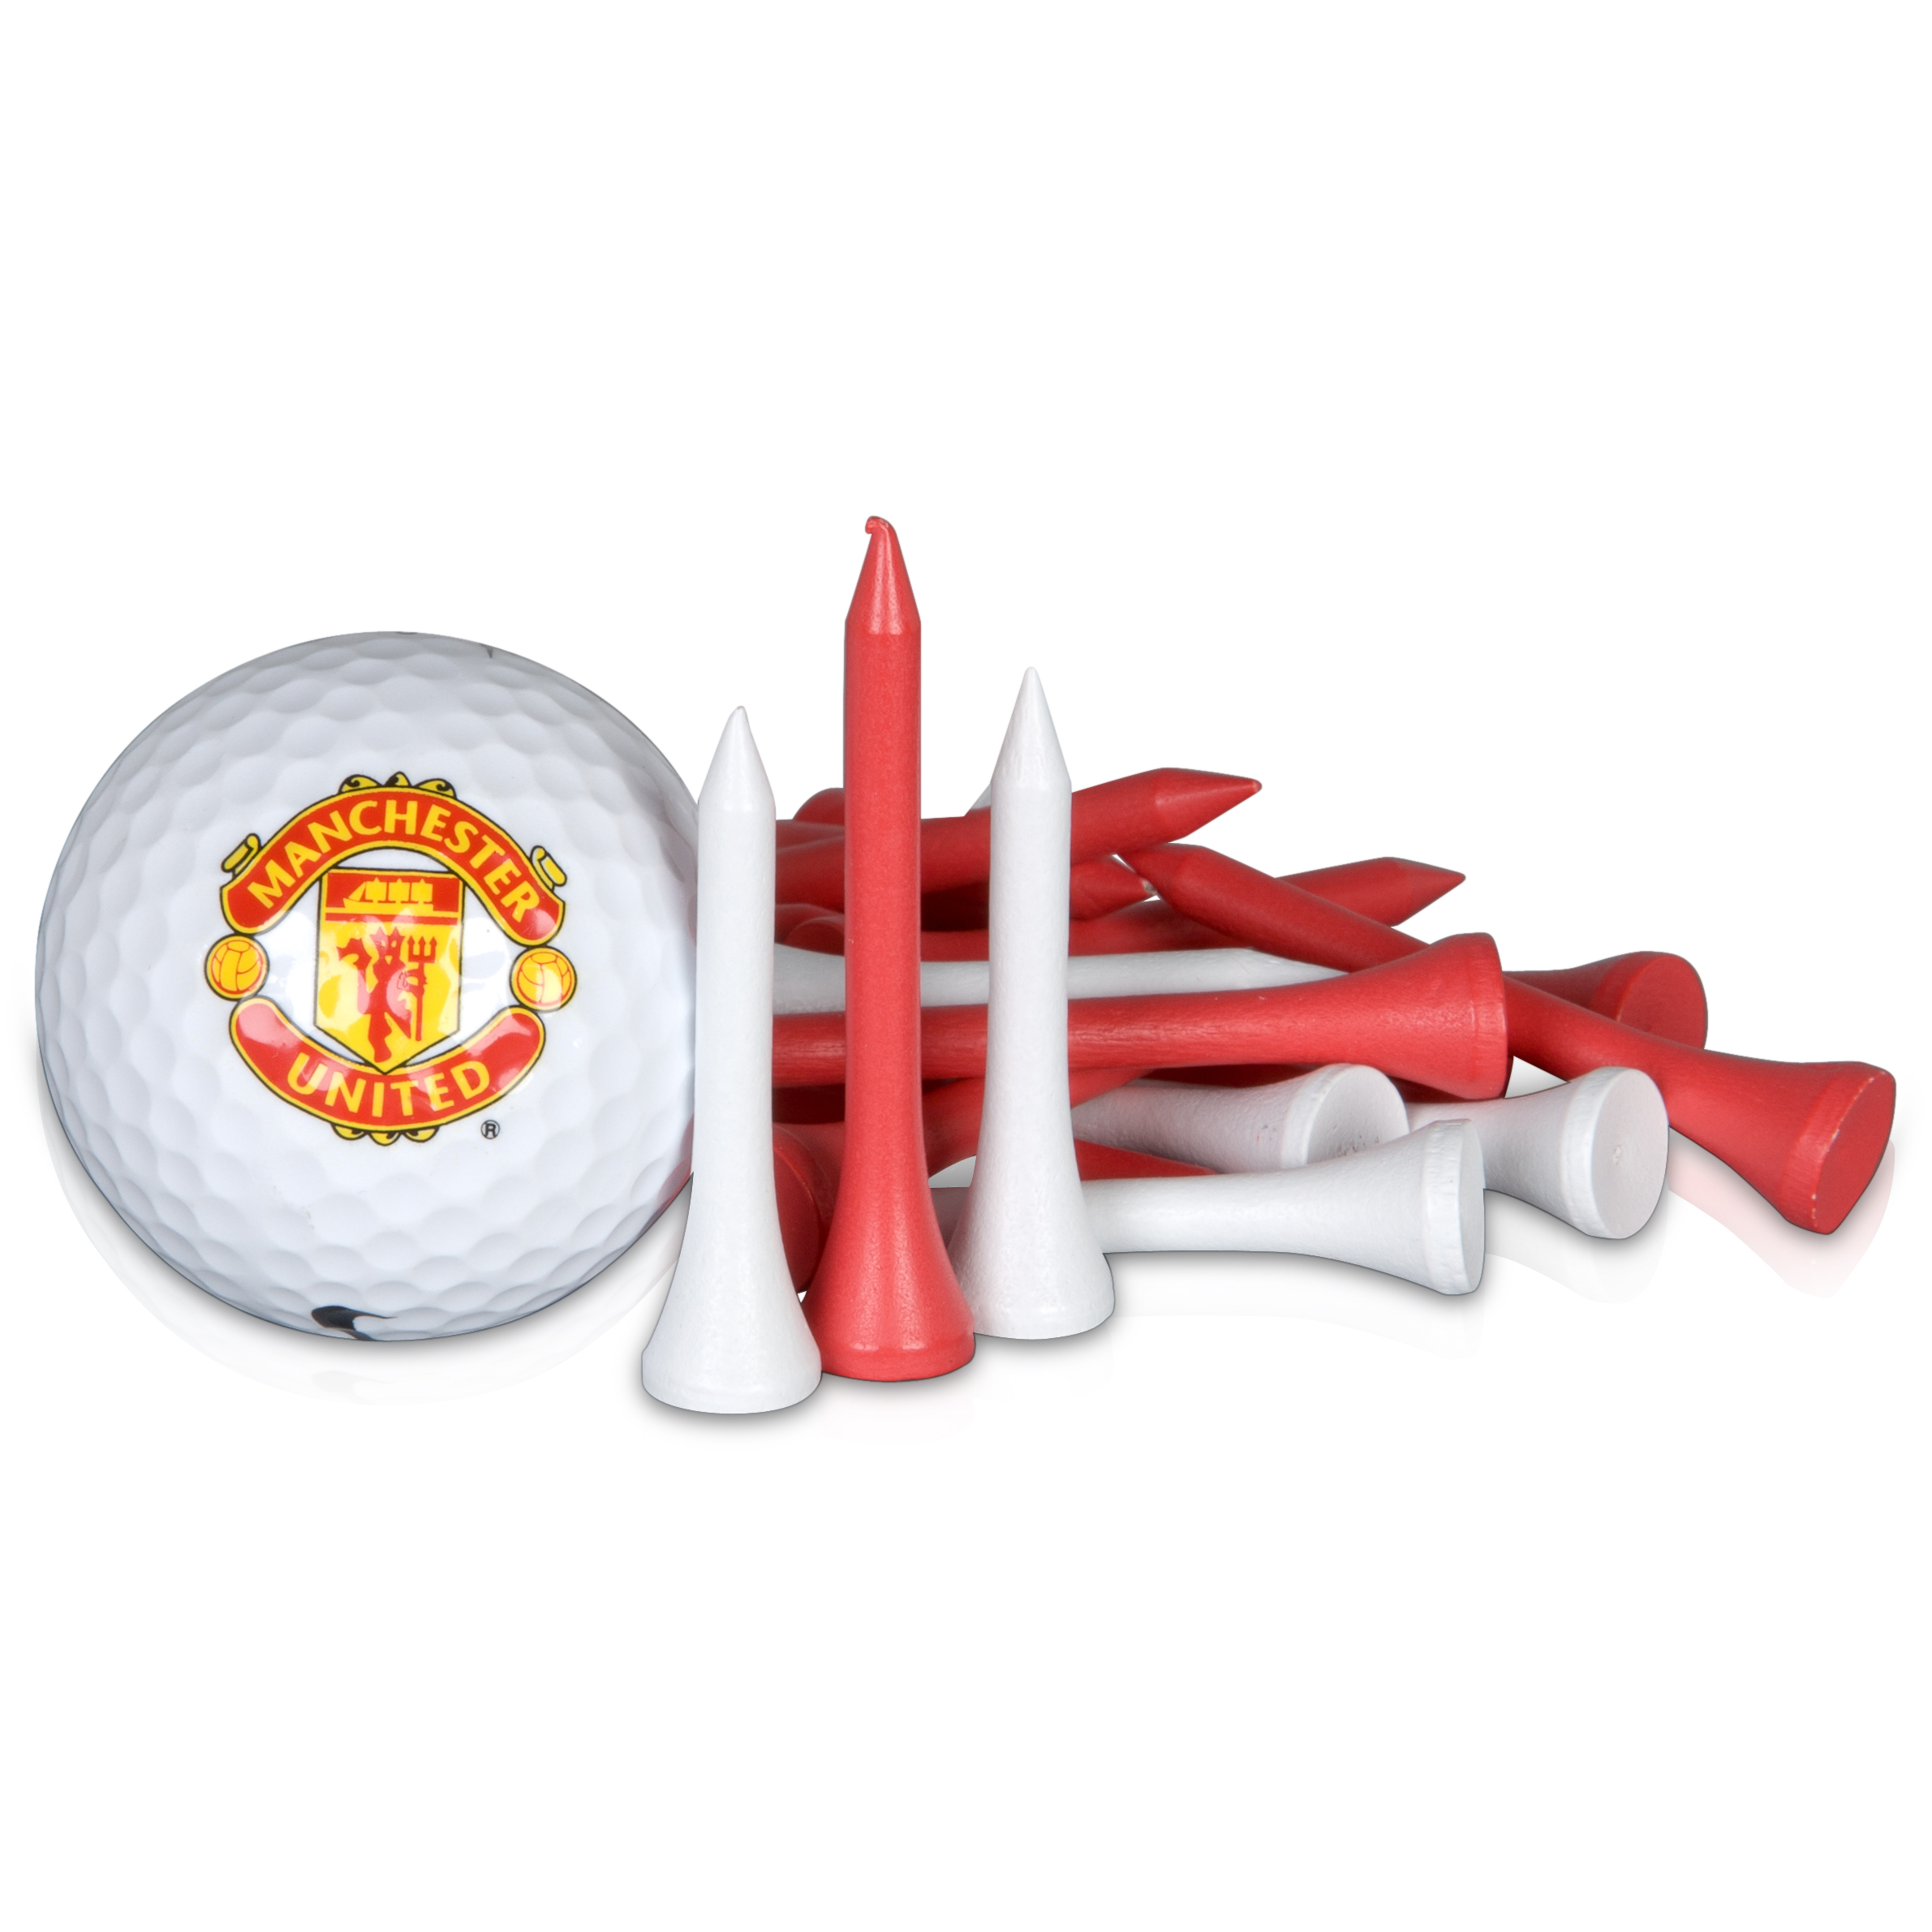 Manchester United Golf Gift Ball and Tee Set